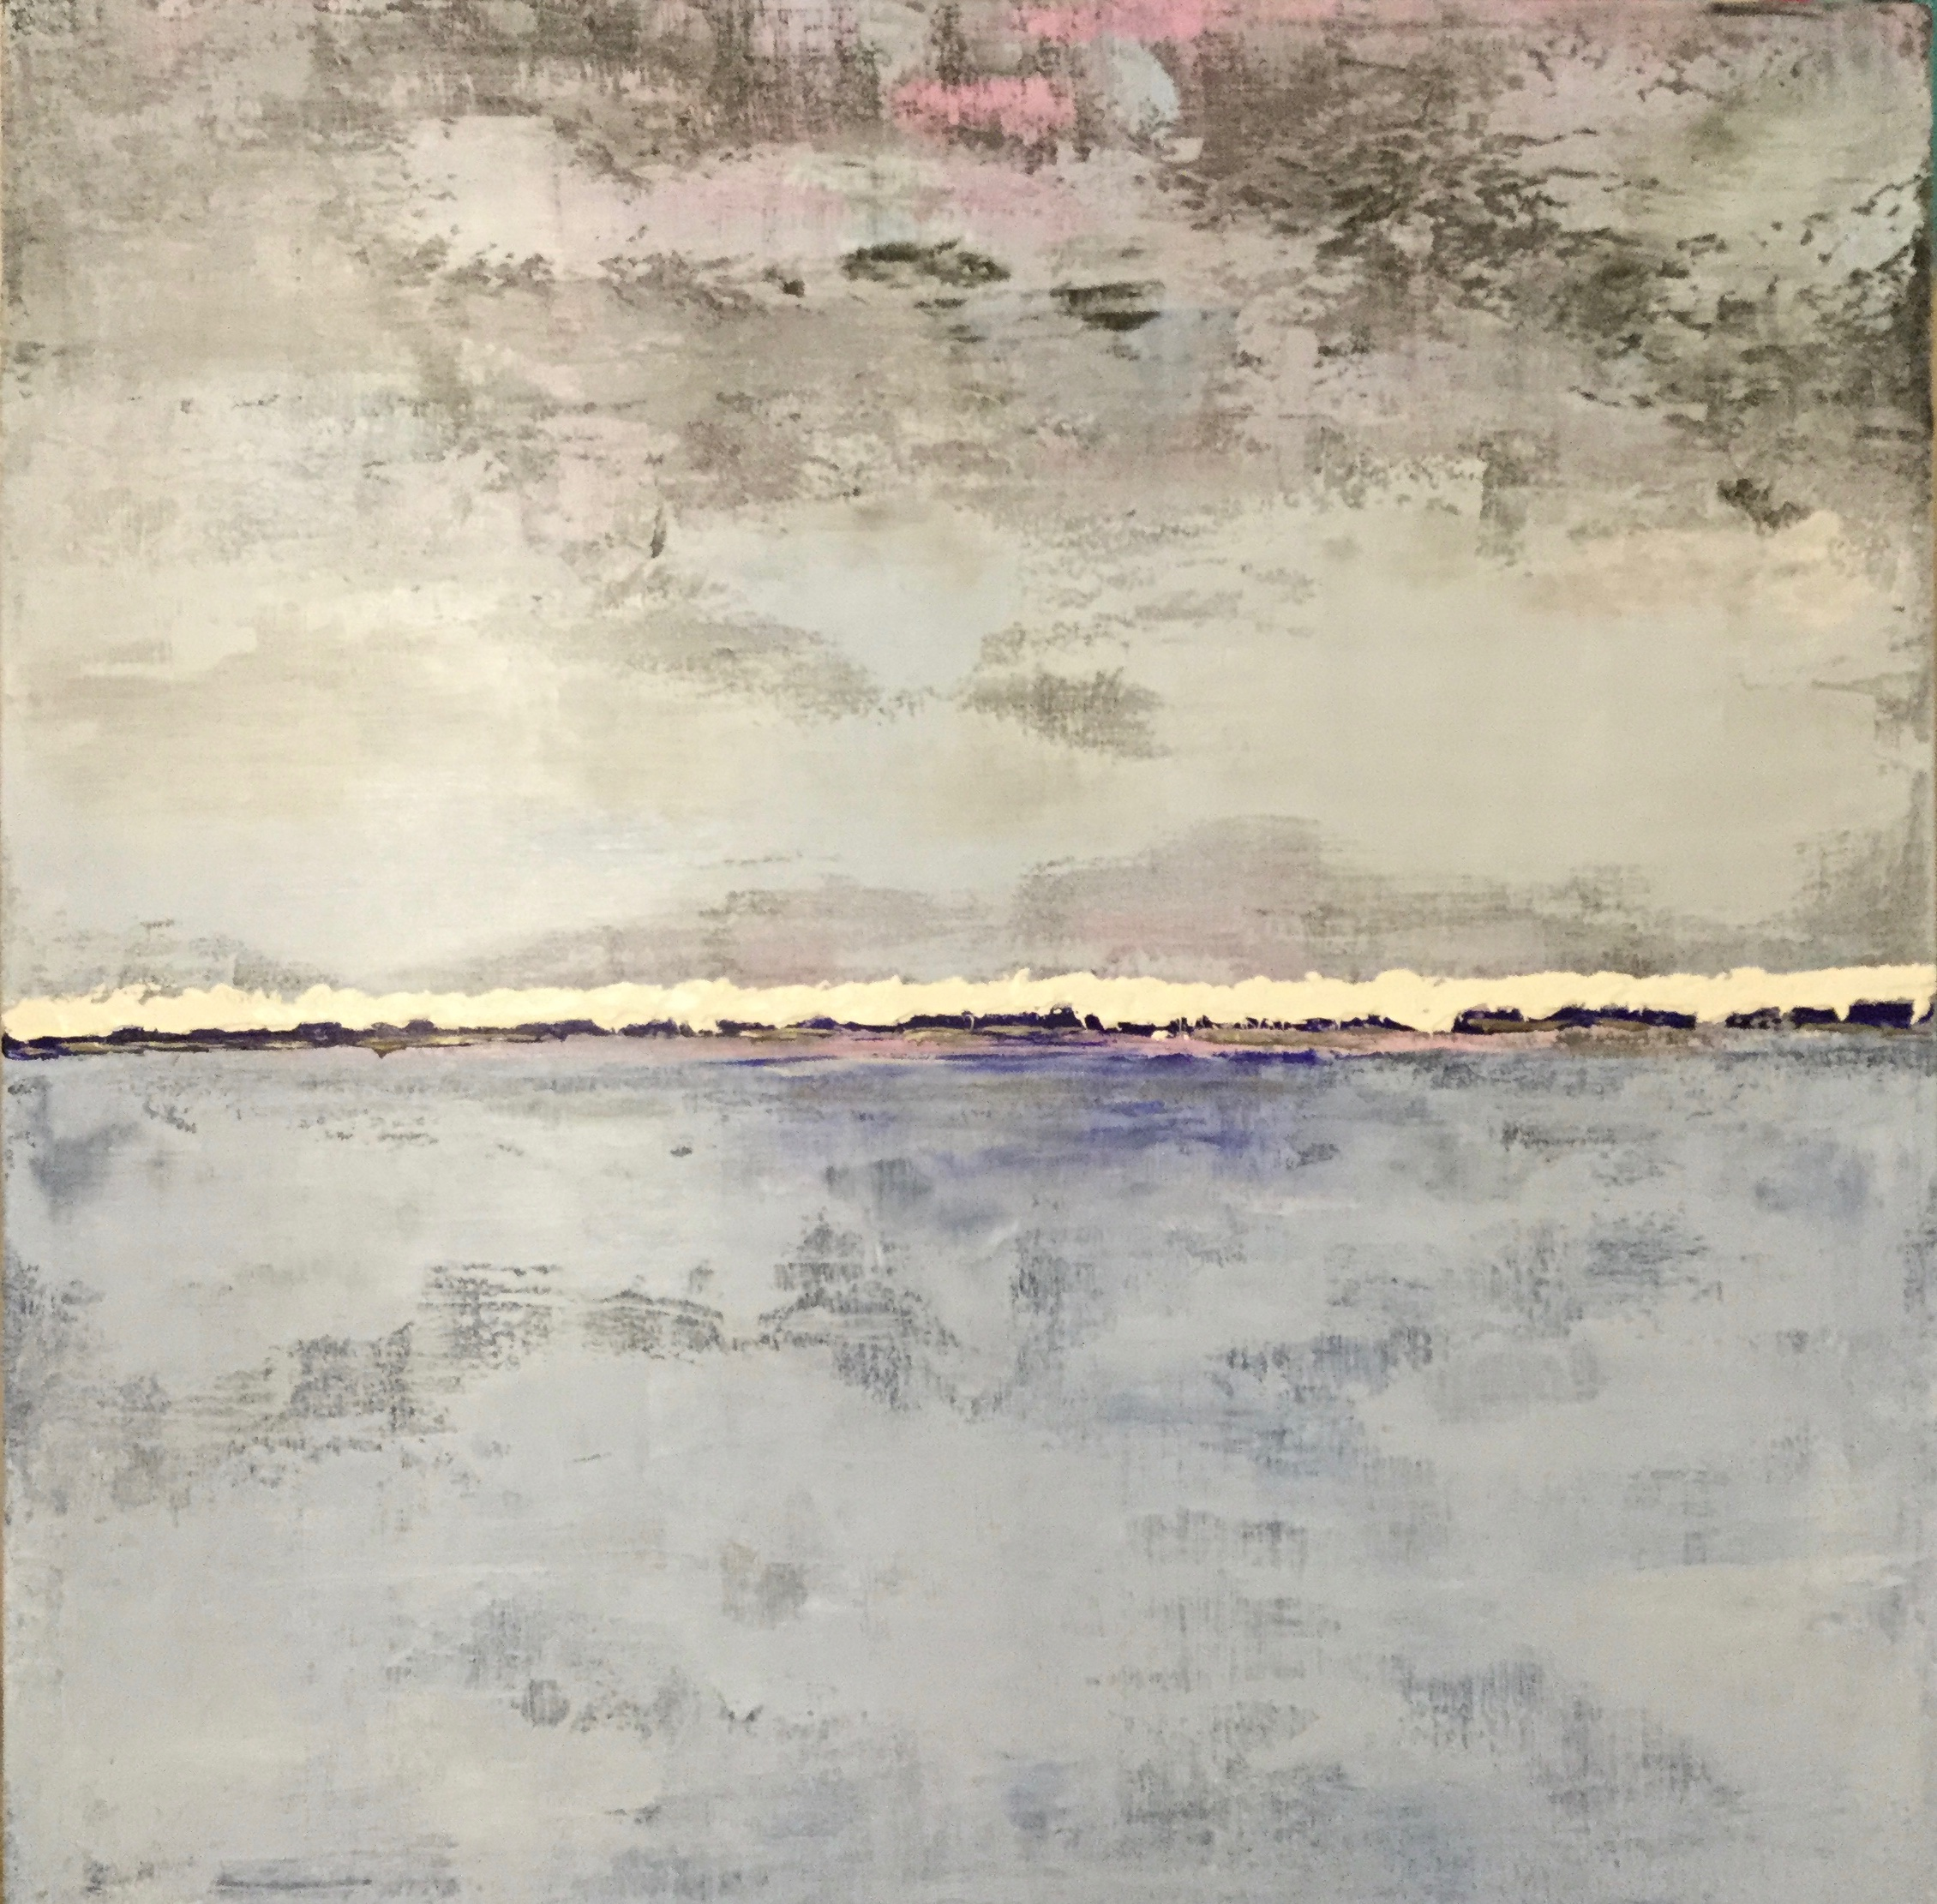 As the Storm Rolls In artwork by Renee Guercia - art listed for sale on Artplode